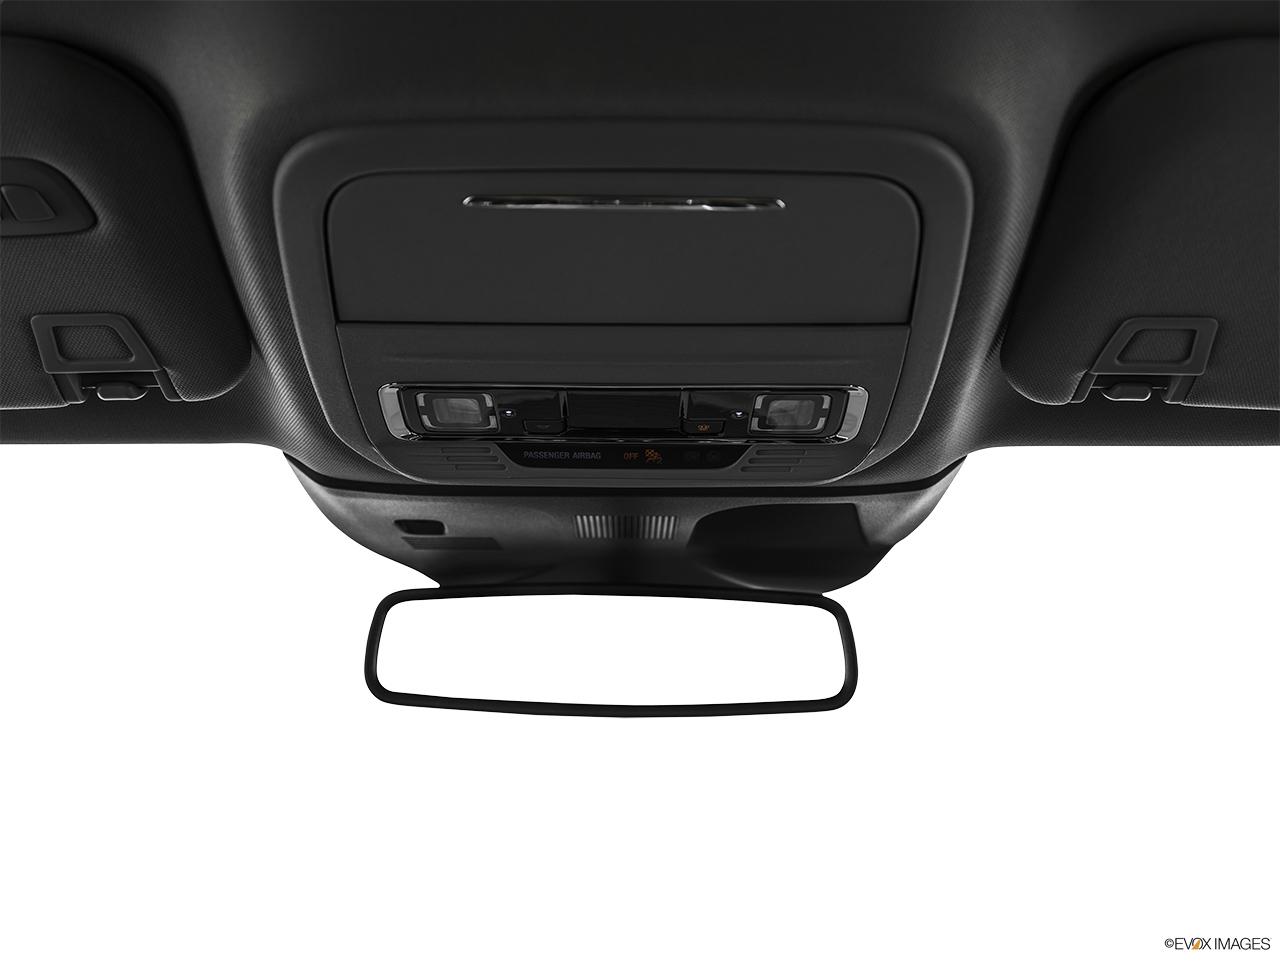 2020 Lincoln Corsair Standard Courtesy lamps/ceiling controls.